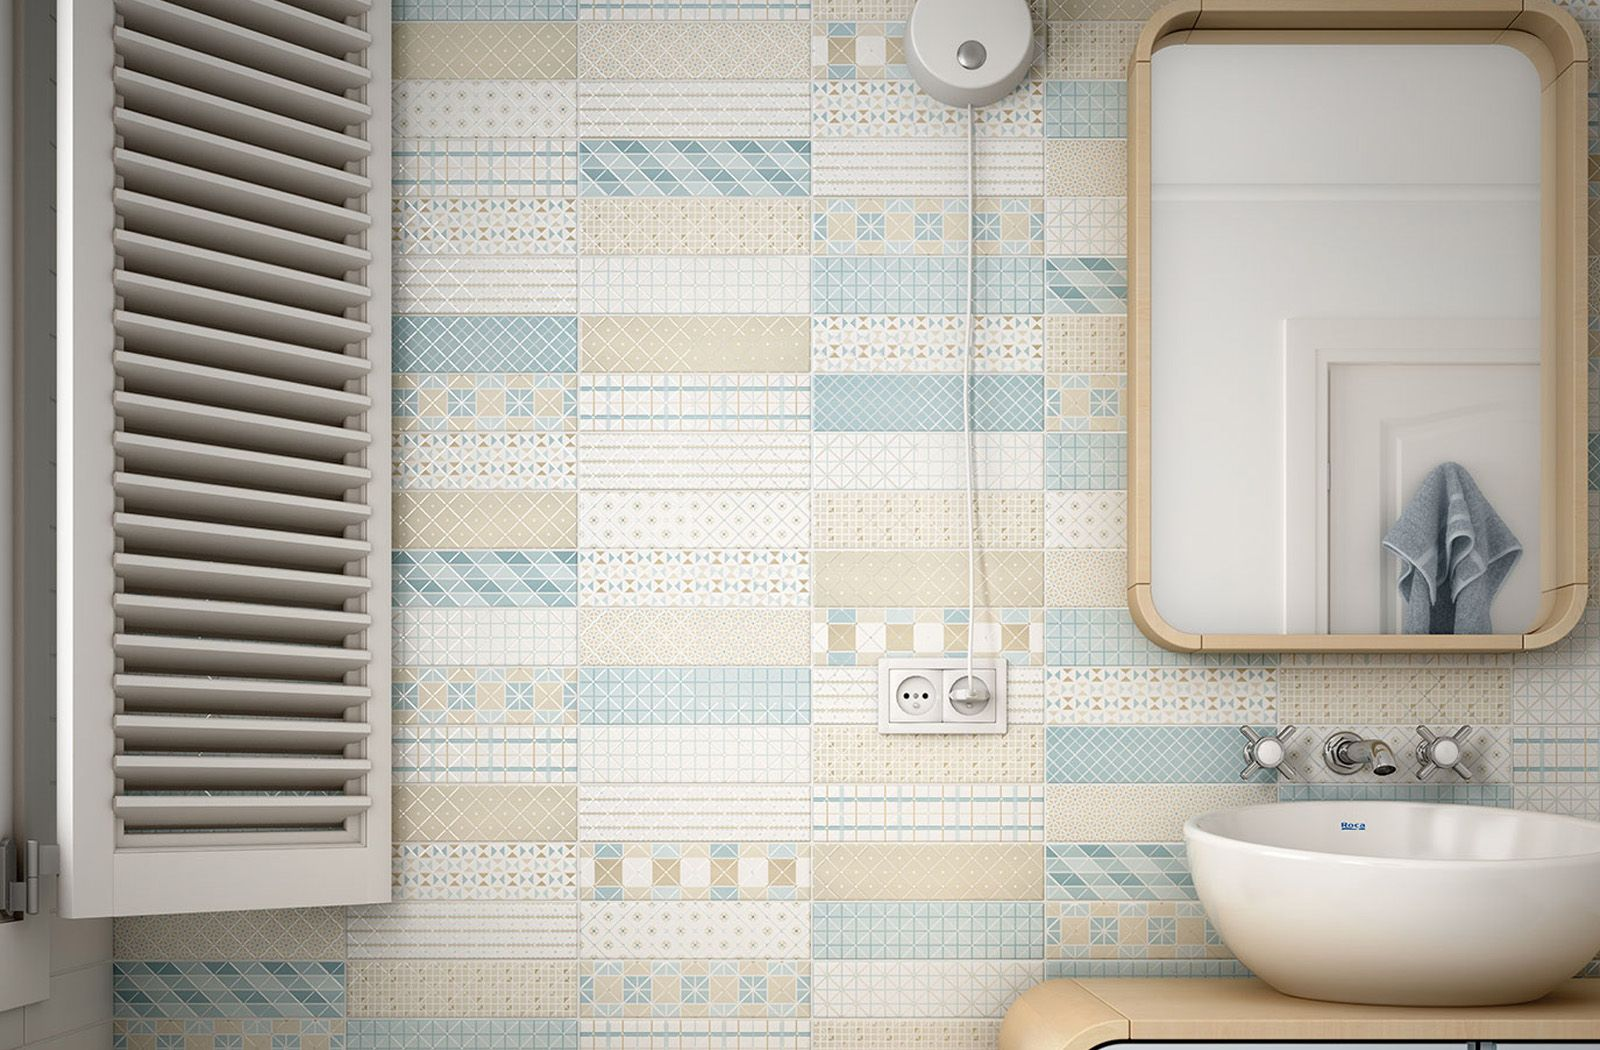 Decorative Wall Tiles For Bathroom The Ideal Country Bathroomdecorative Wall Tile Dunas Mantille